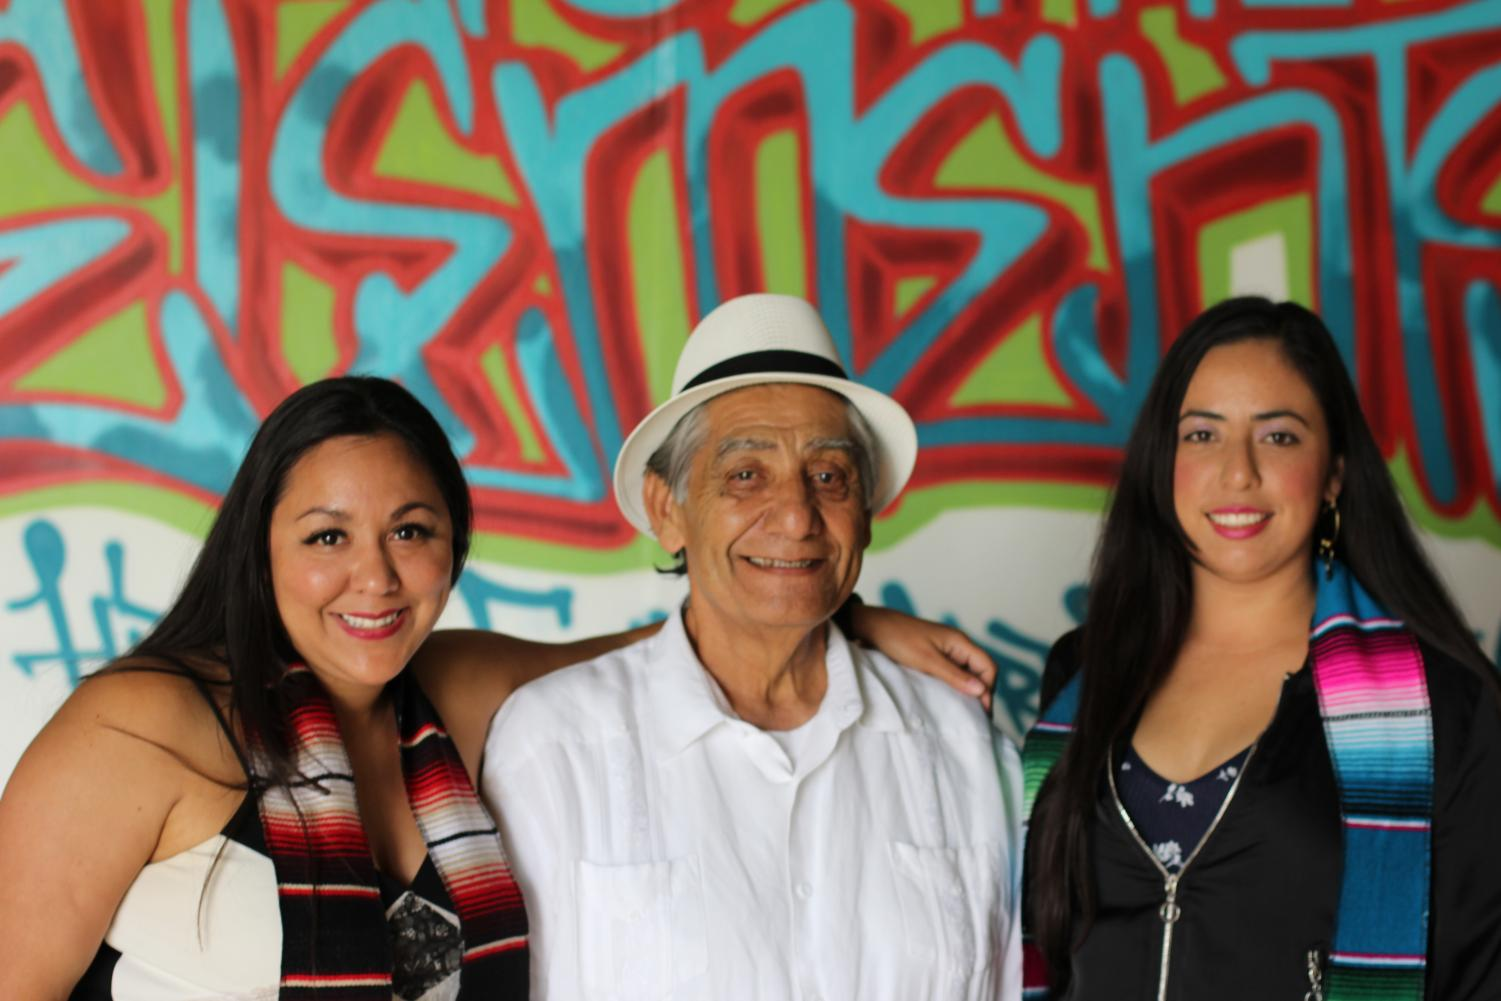 Professor Cruz Rangel pictured with students Mernis Gonzalez and Laura Marquez at the reception for the 49th Annual Chicano Latina Graduation Celebration held at the Centro Cultural de la Raza. By Brian Mohler/City Times